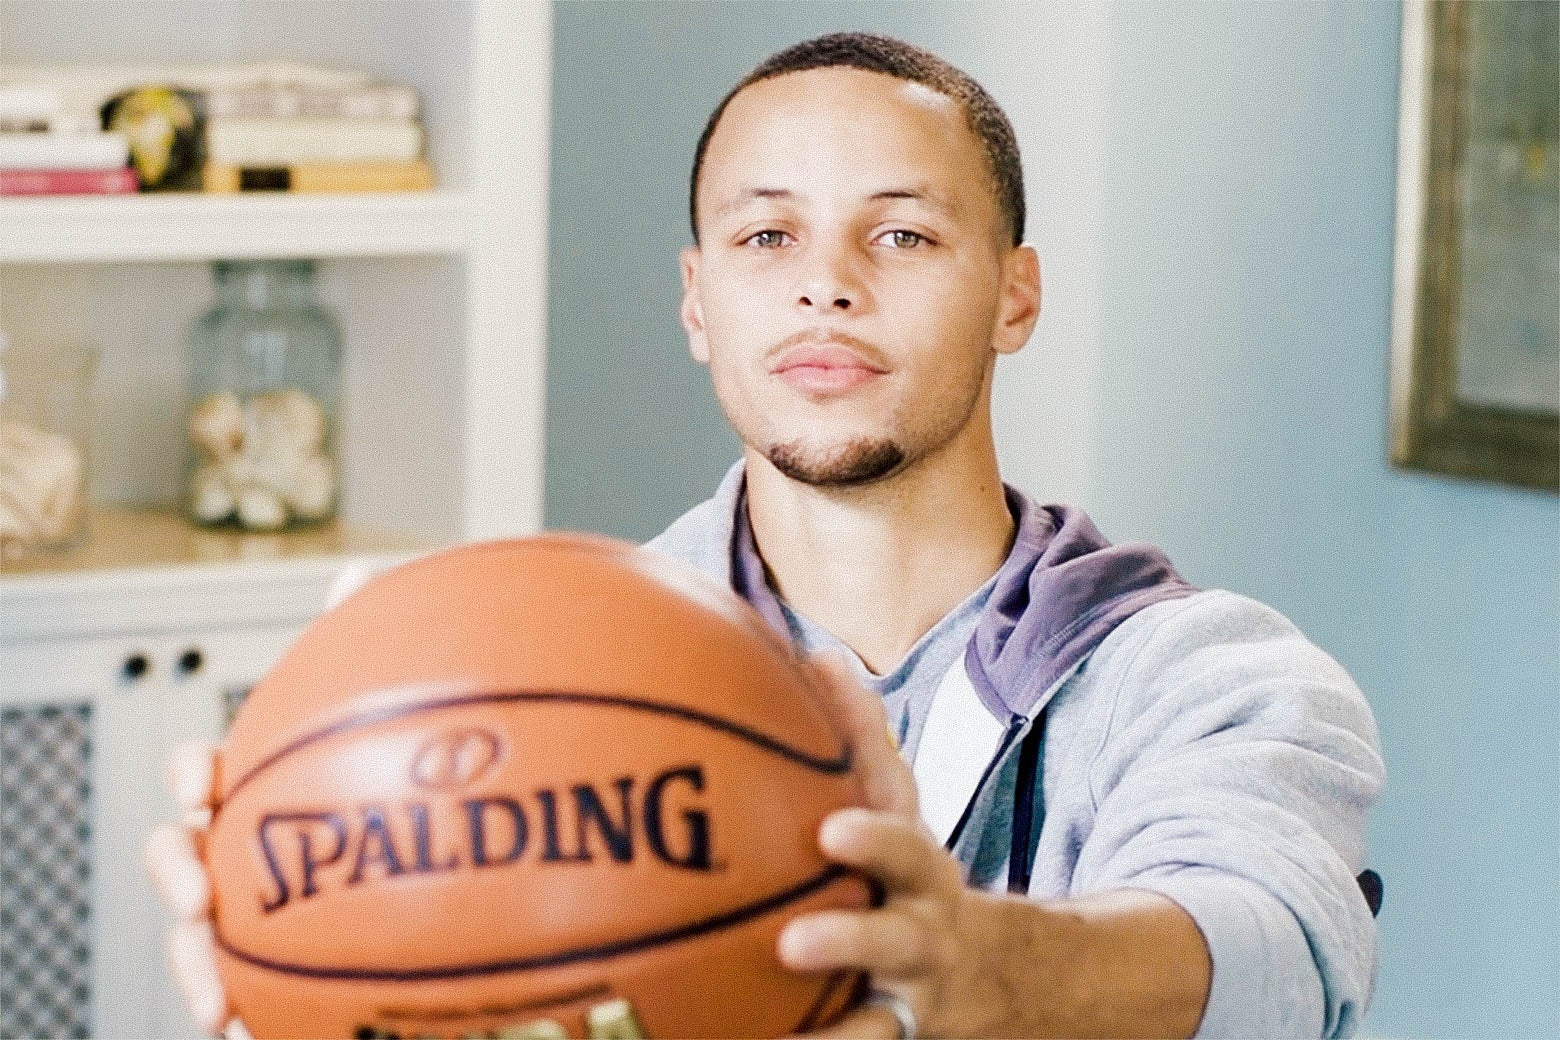 Stephen Curry holding a basketball.